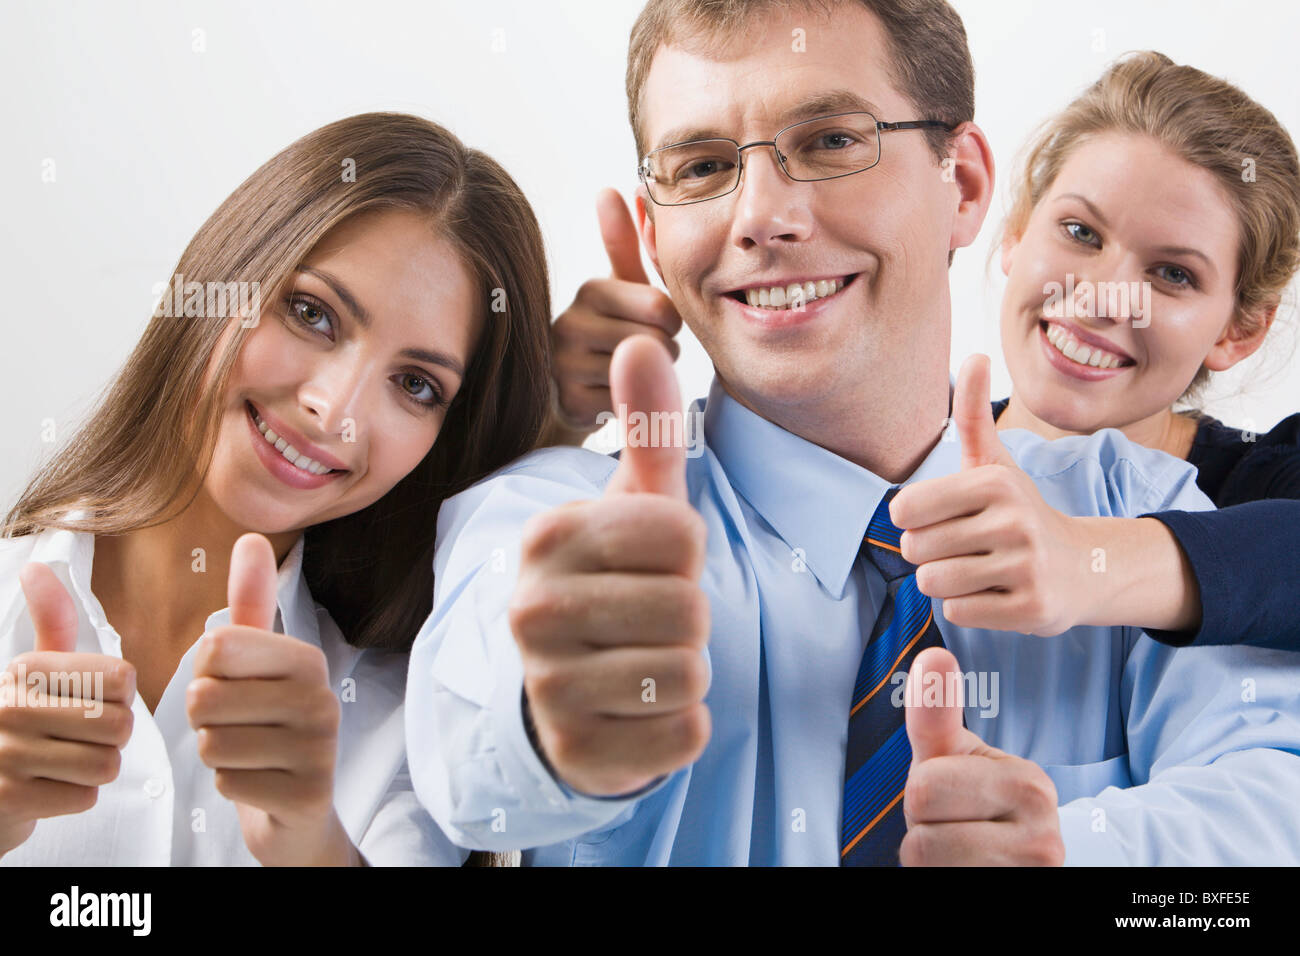 Team of three office worker's give the thumb's up sign Stock Photo